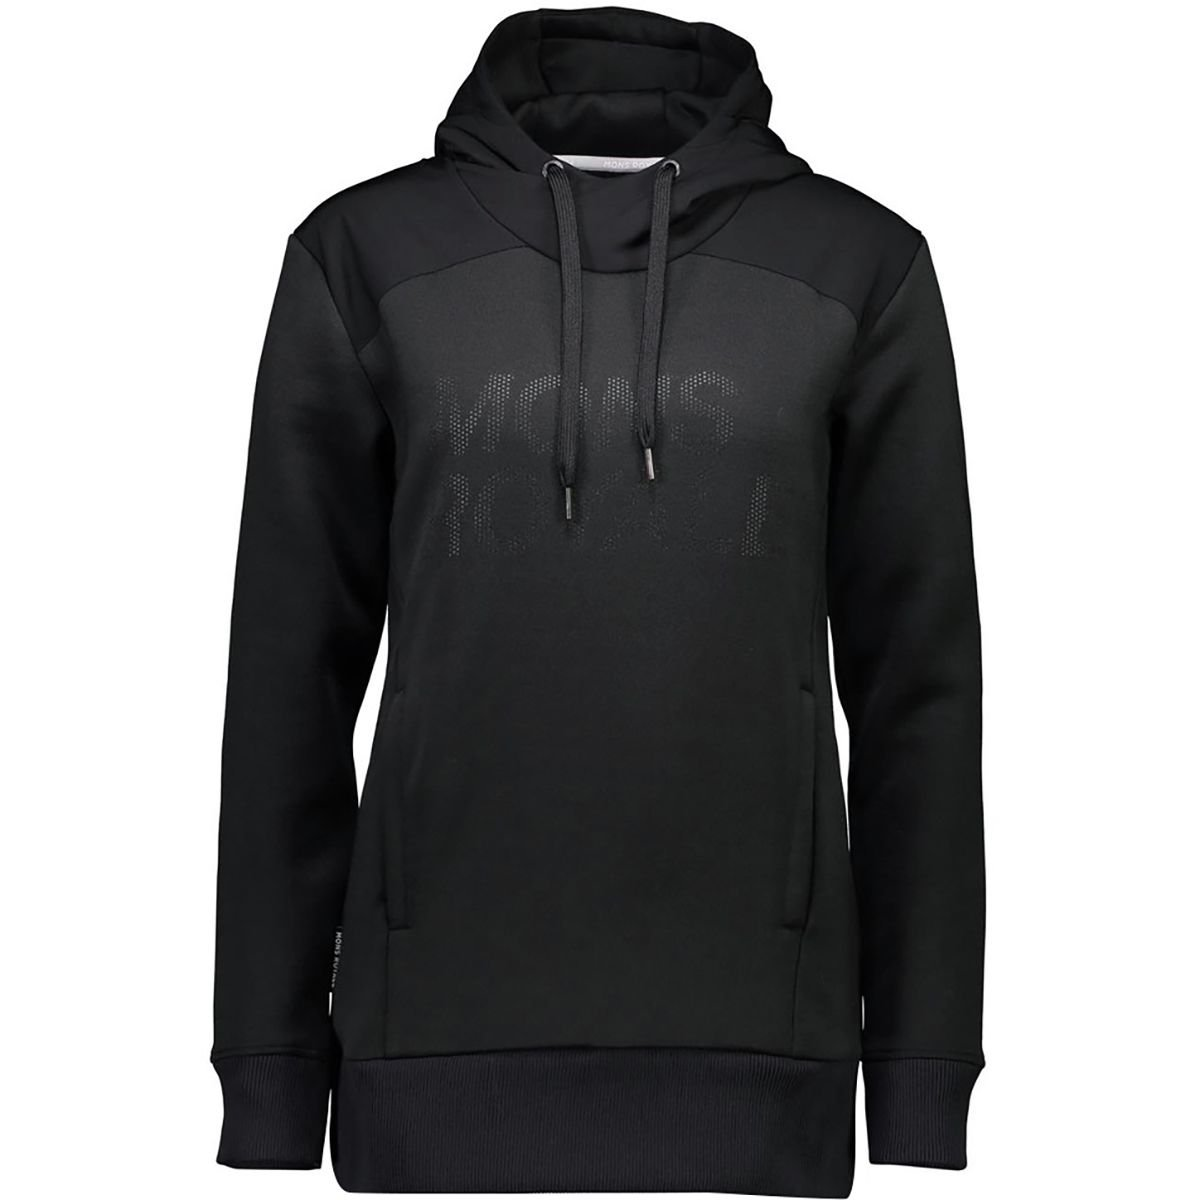 Mons Royale Transition Hoodie - Women's Black, L